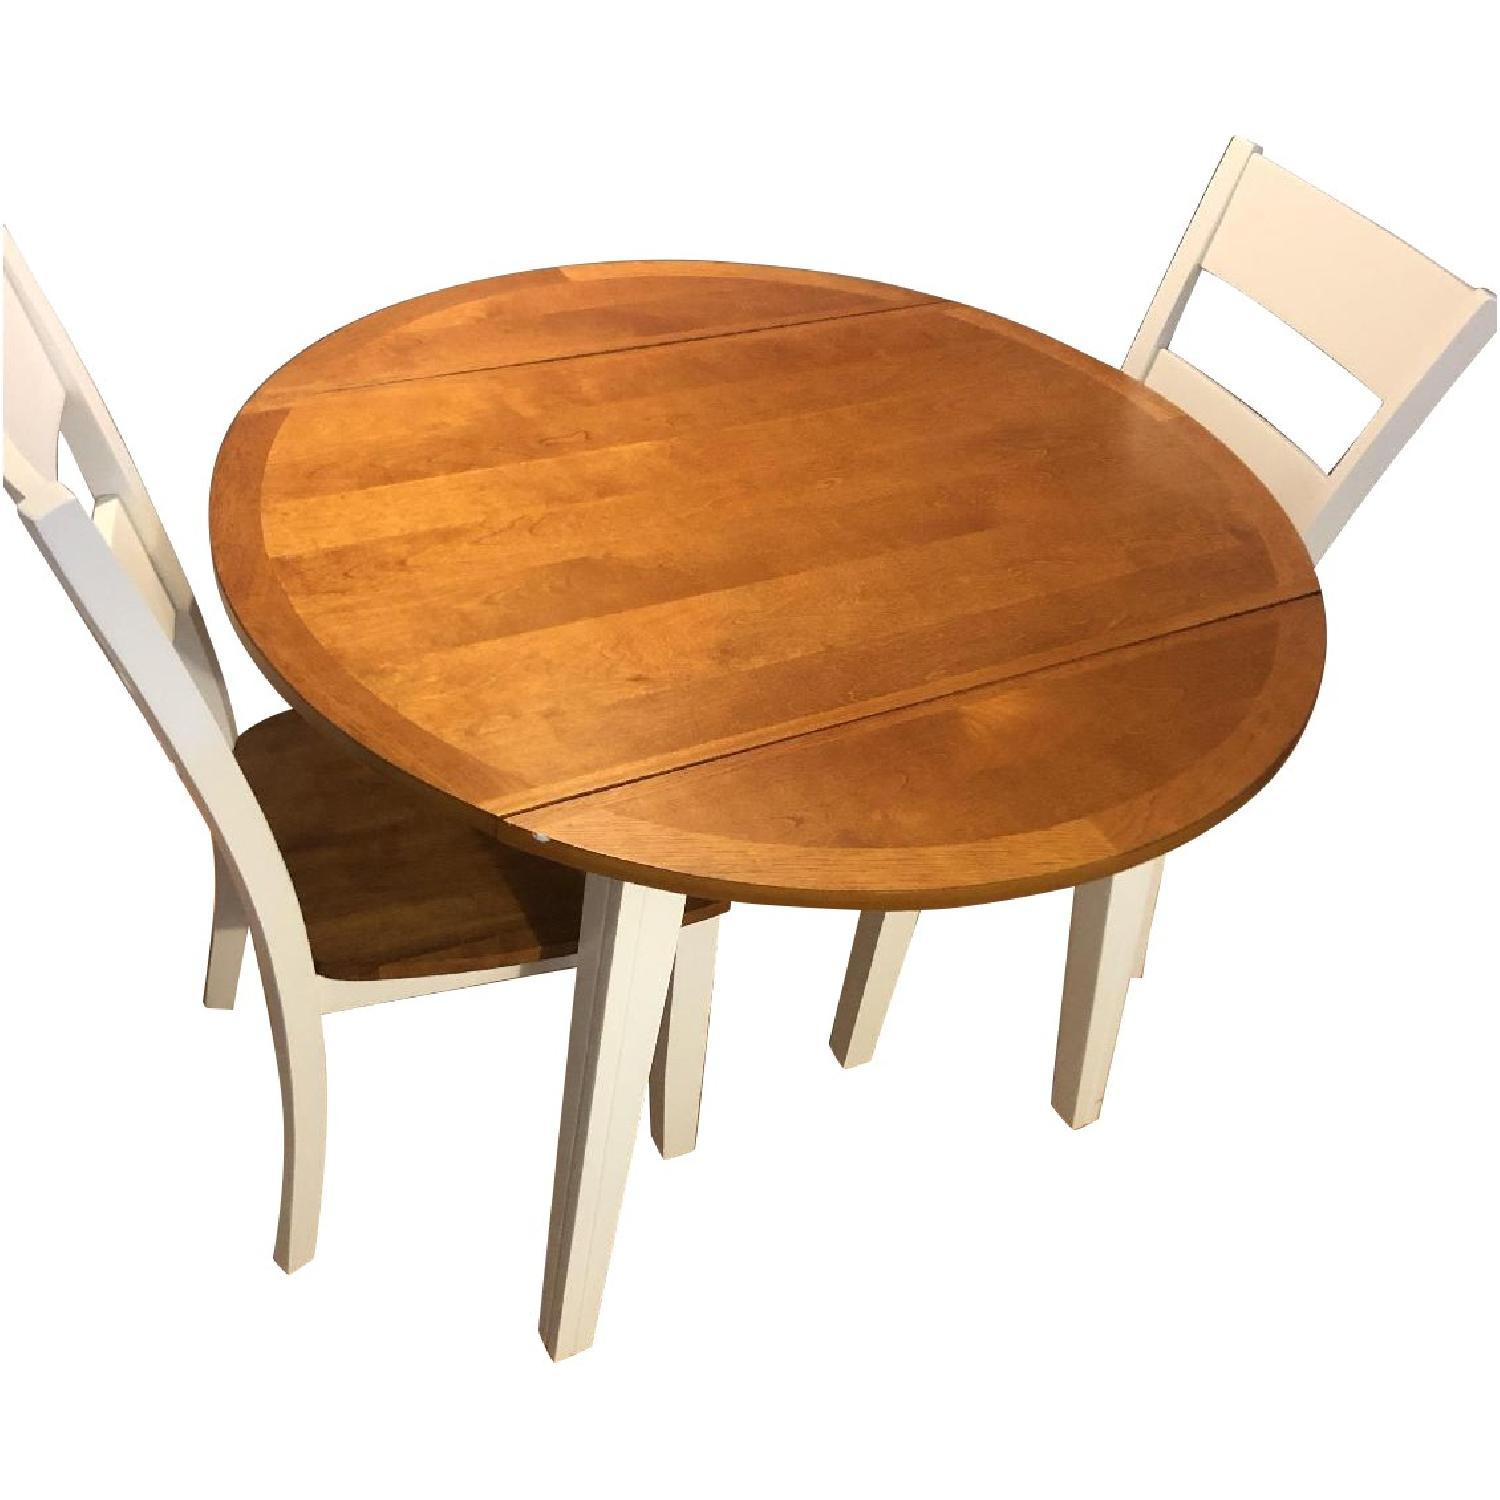 Bob's White & Oak Table w/ 2 Chairs